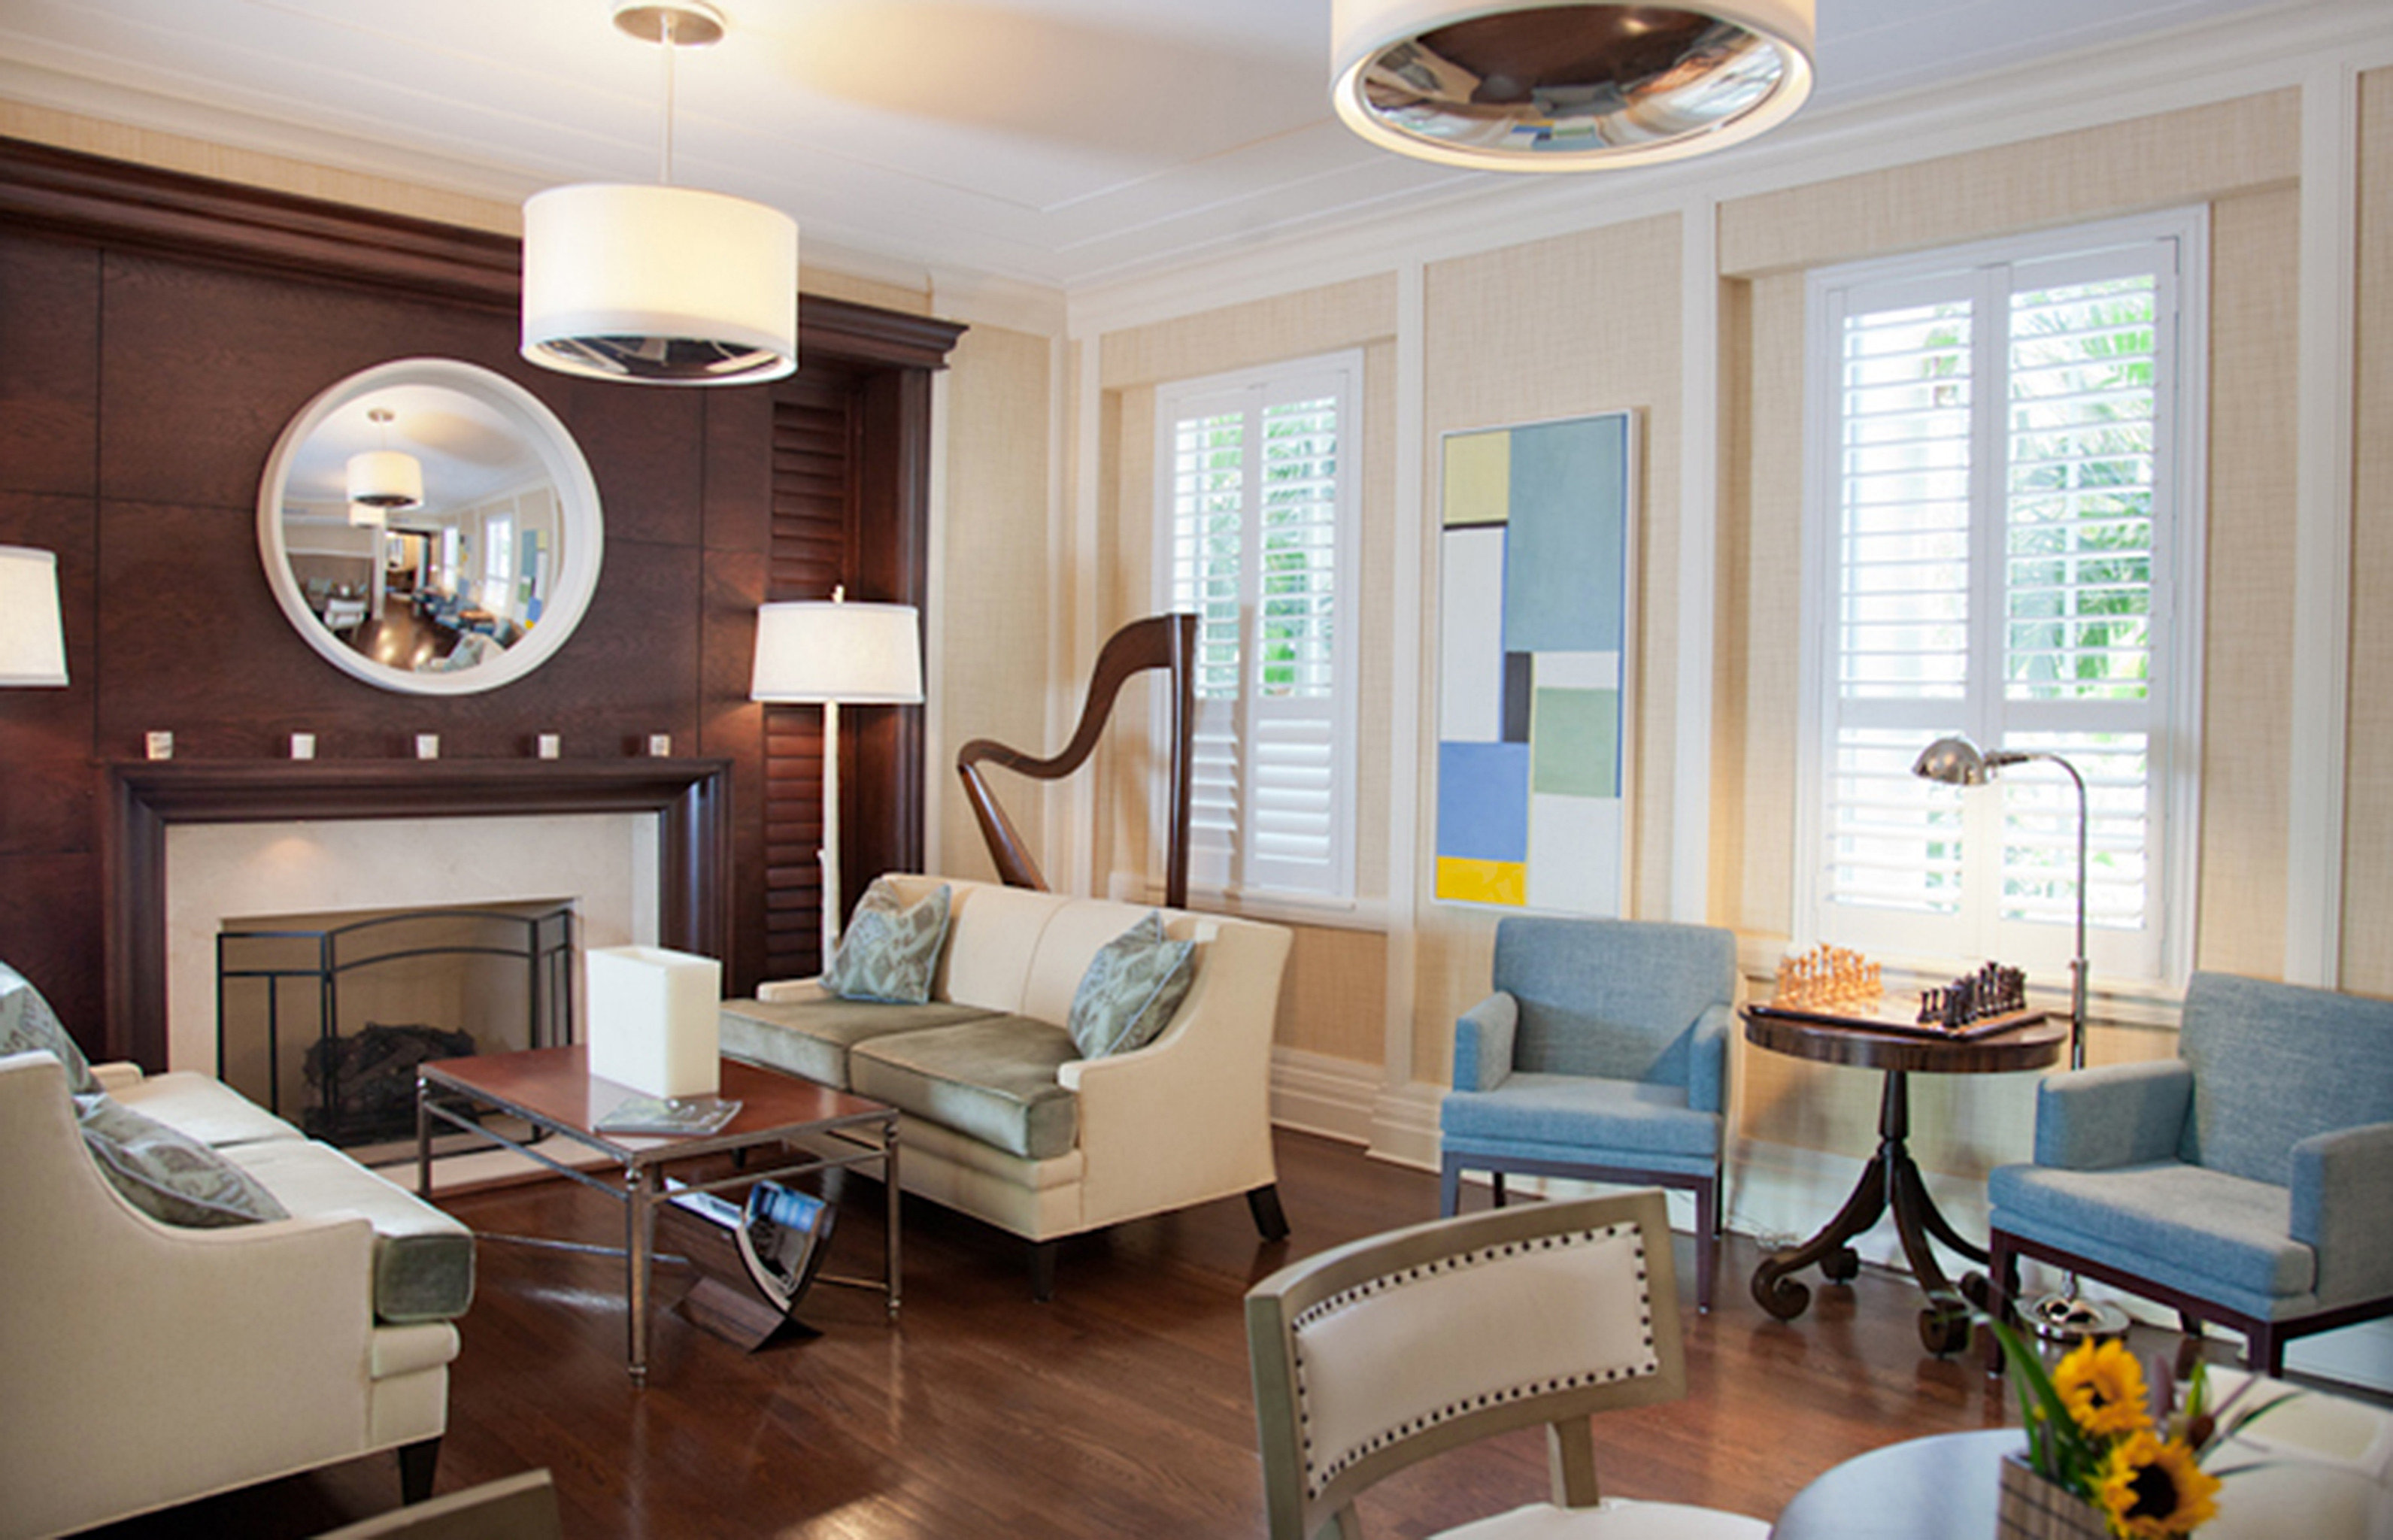 Lounge Luxury Modern living room property home condominium Suite cottage